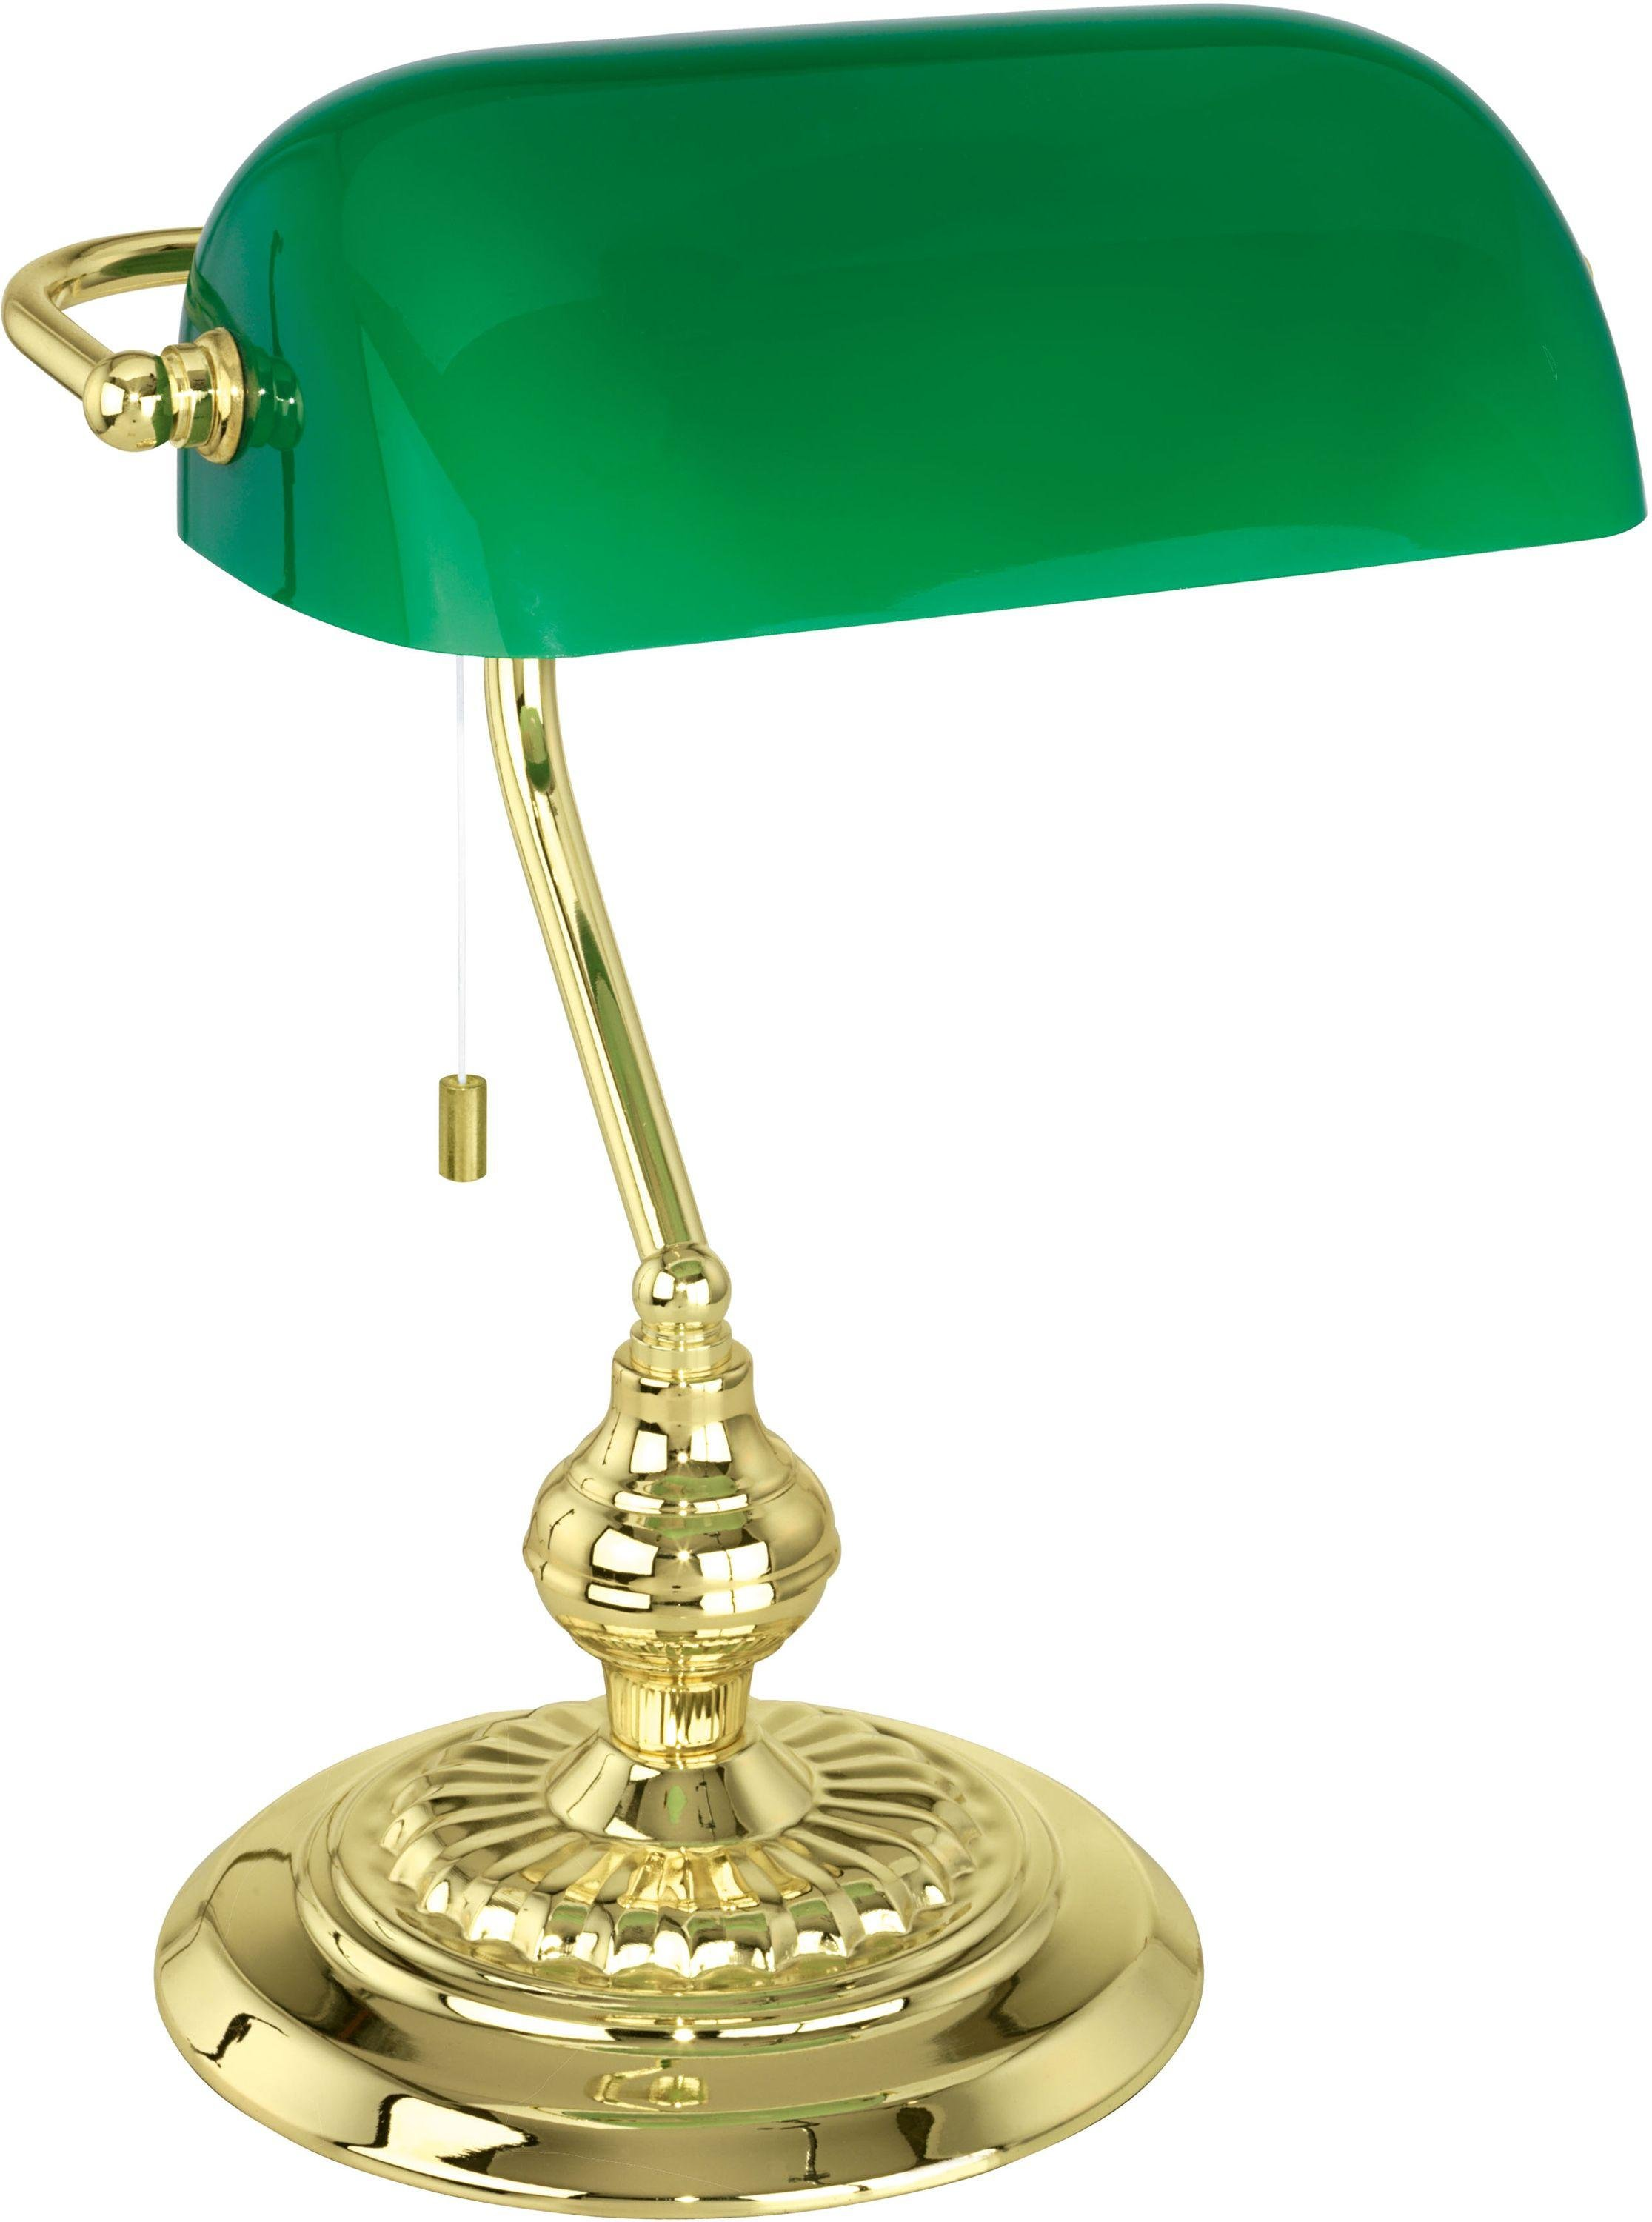 Sale On Eglo Banker Table Glass Light Green Eglo Now